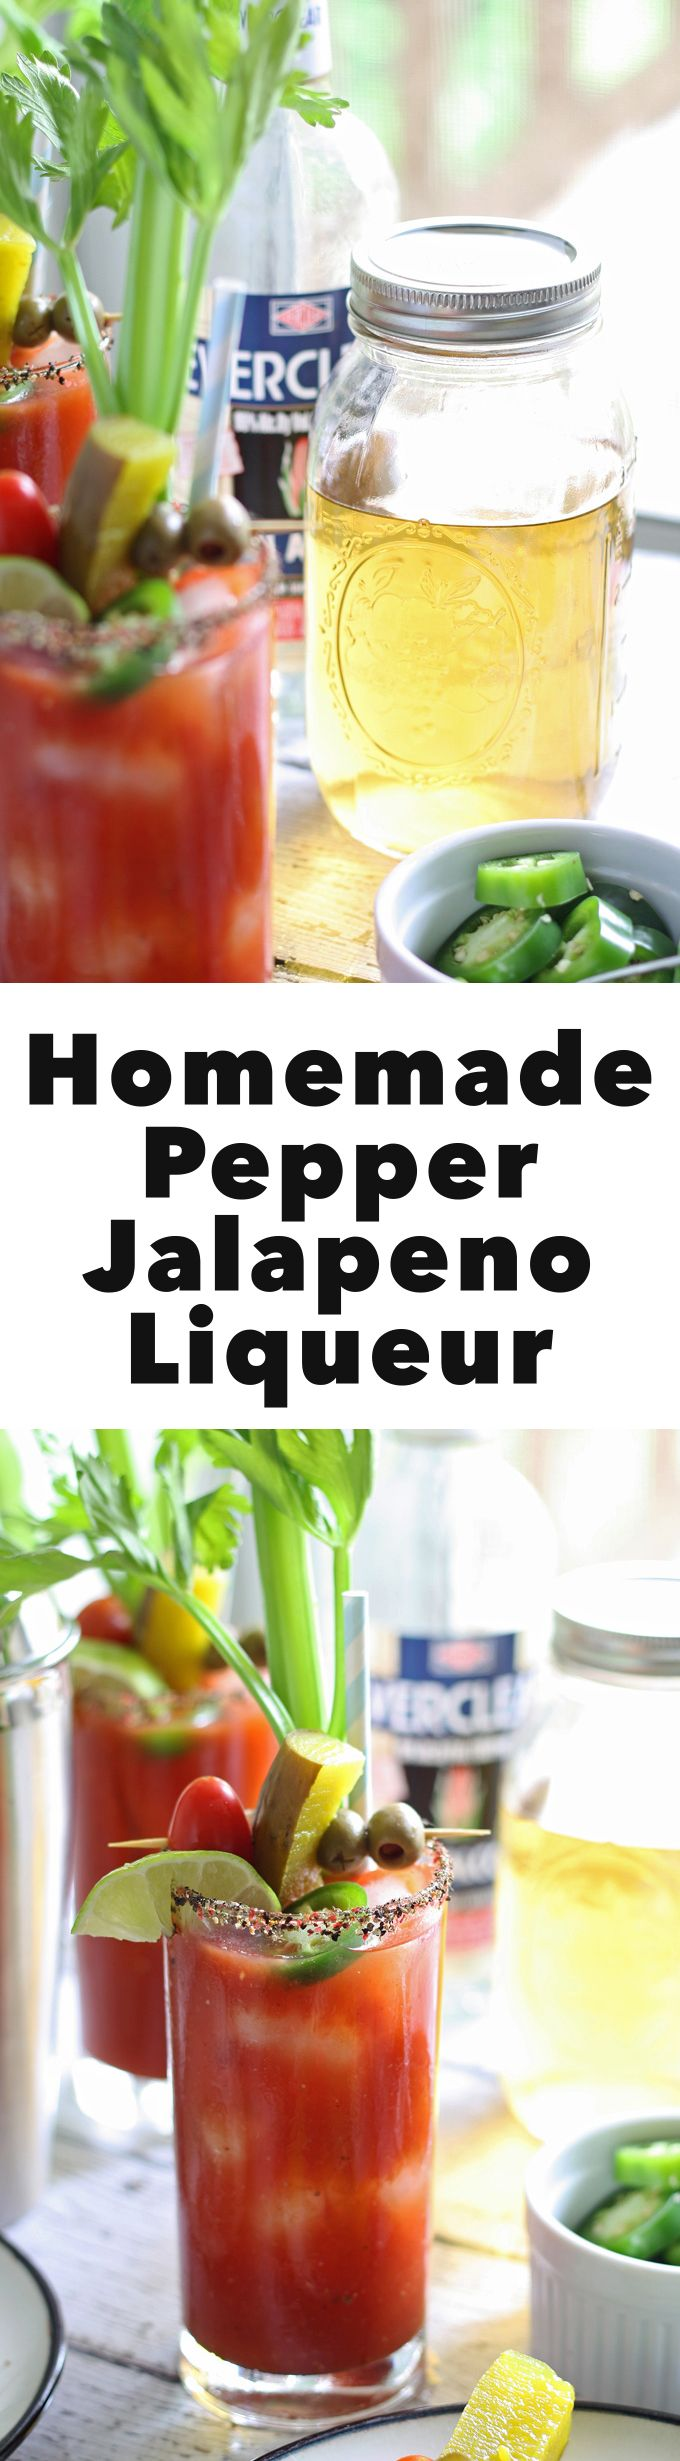 This homemade pepper jalapeño liqueur using Everclear® is fantastic